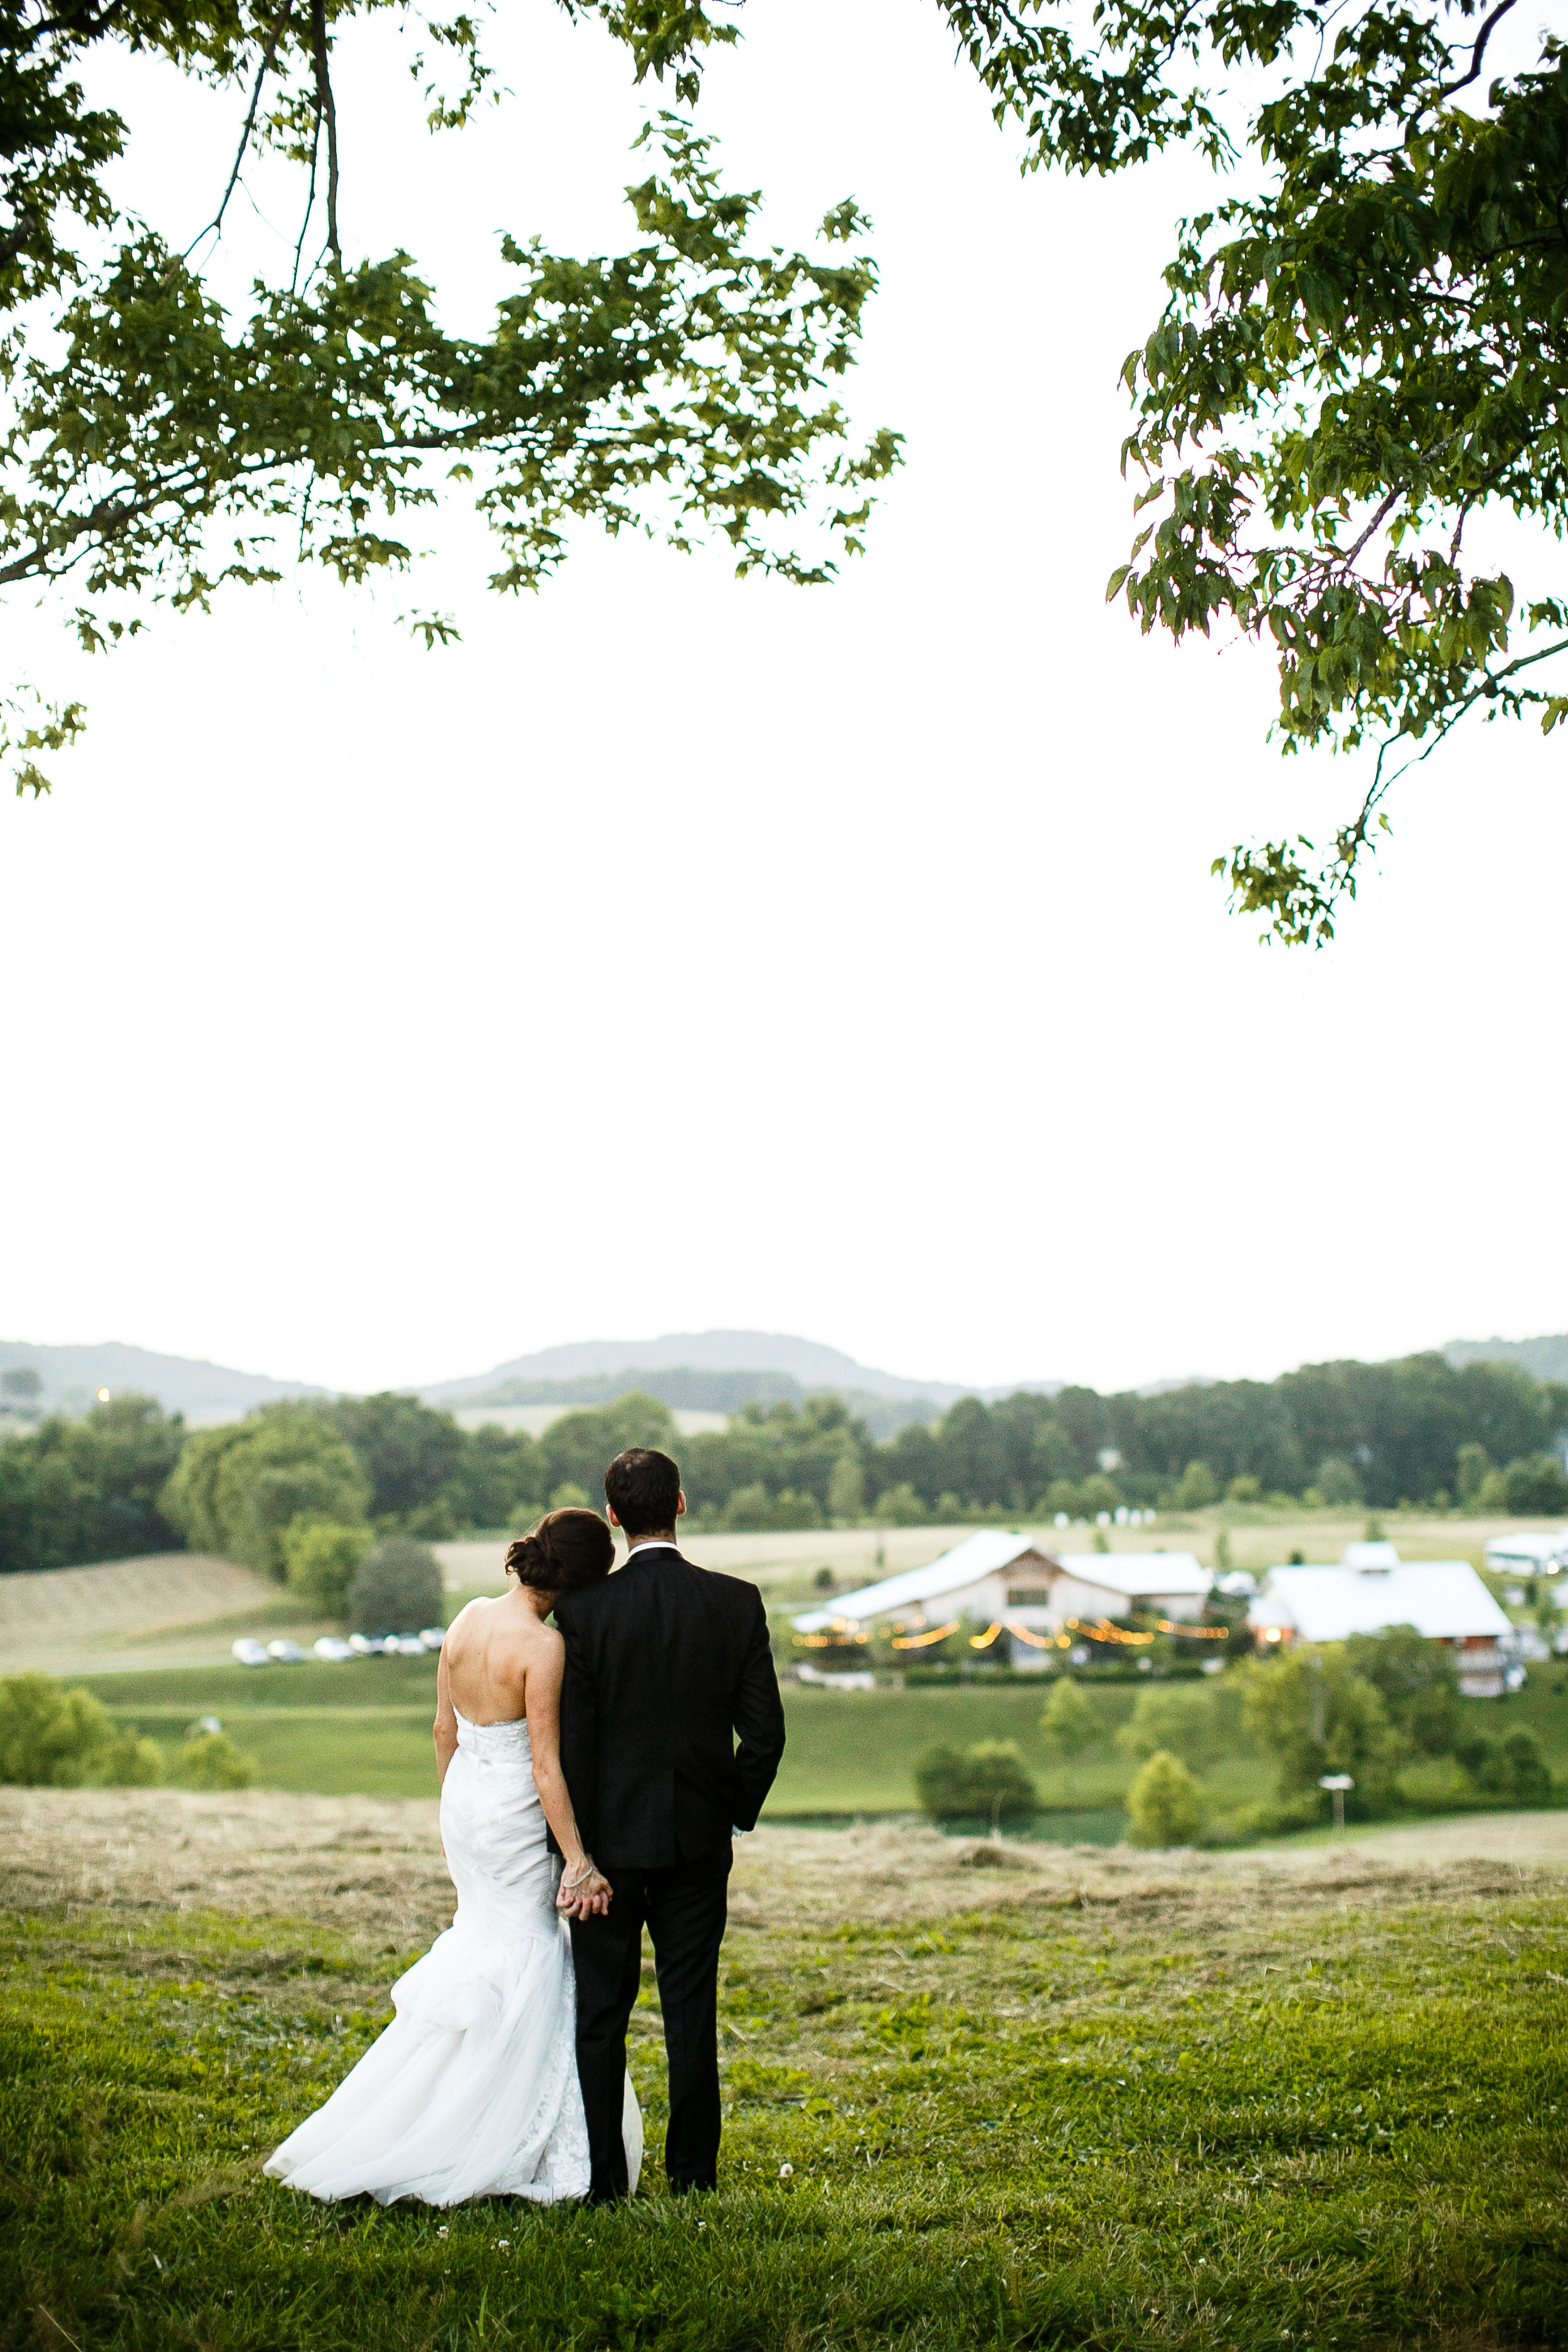 Bride and Groom with scenery and greenery by JanelleElisePhotography.jpg